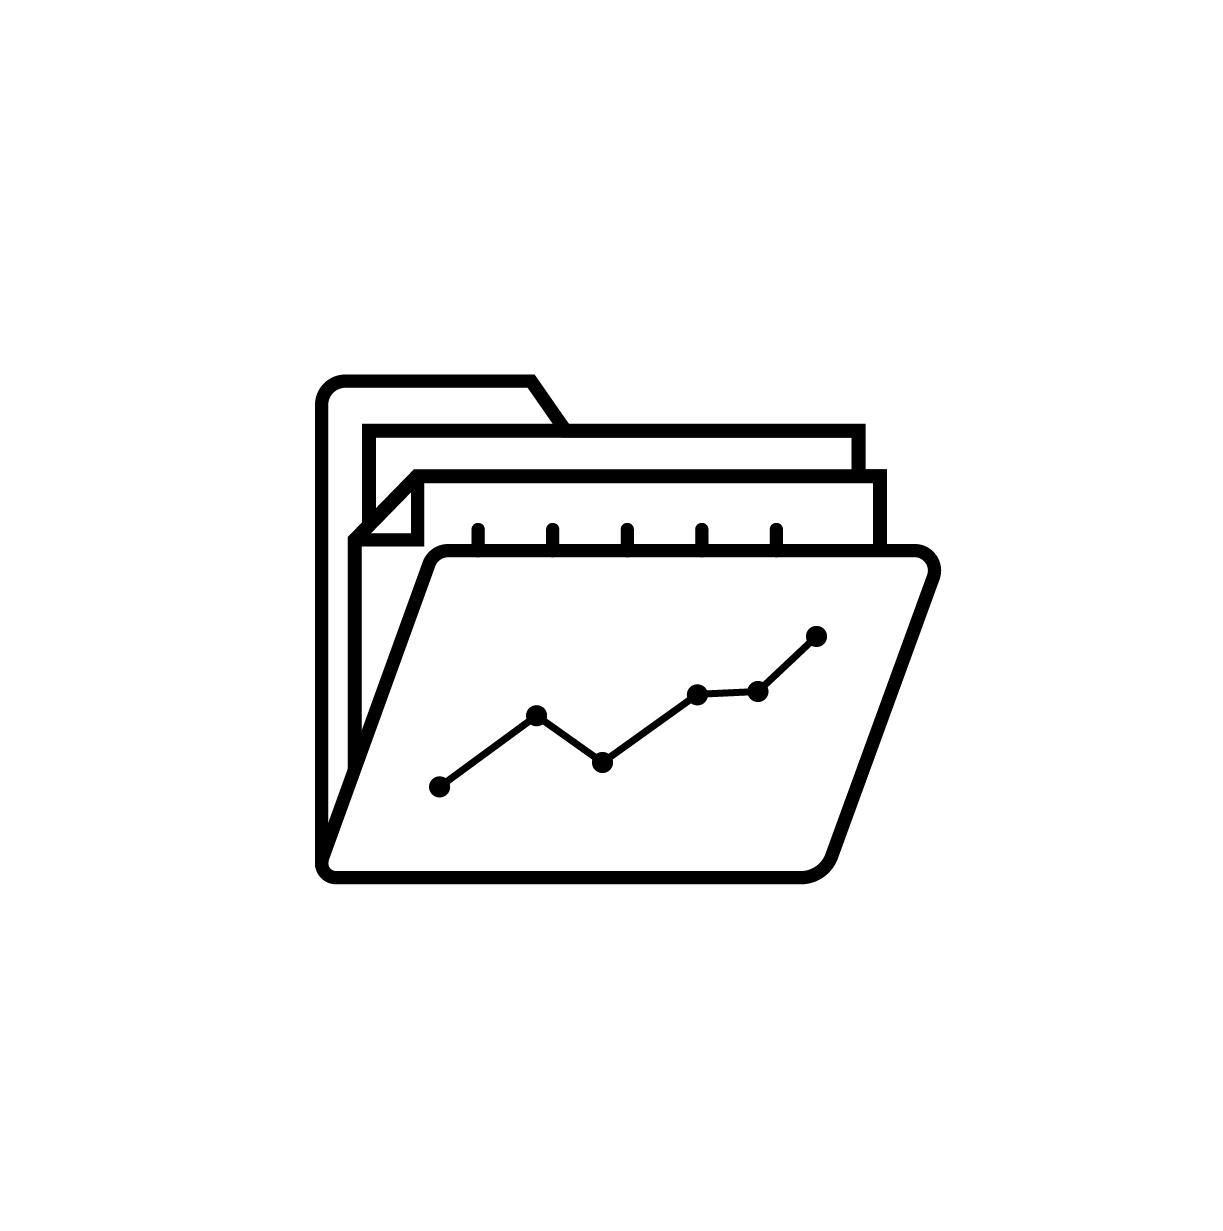 icons-wireframe-black-61.png